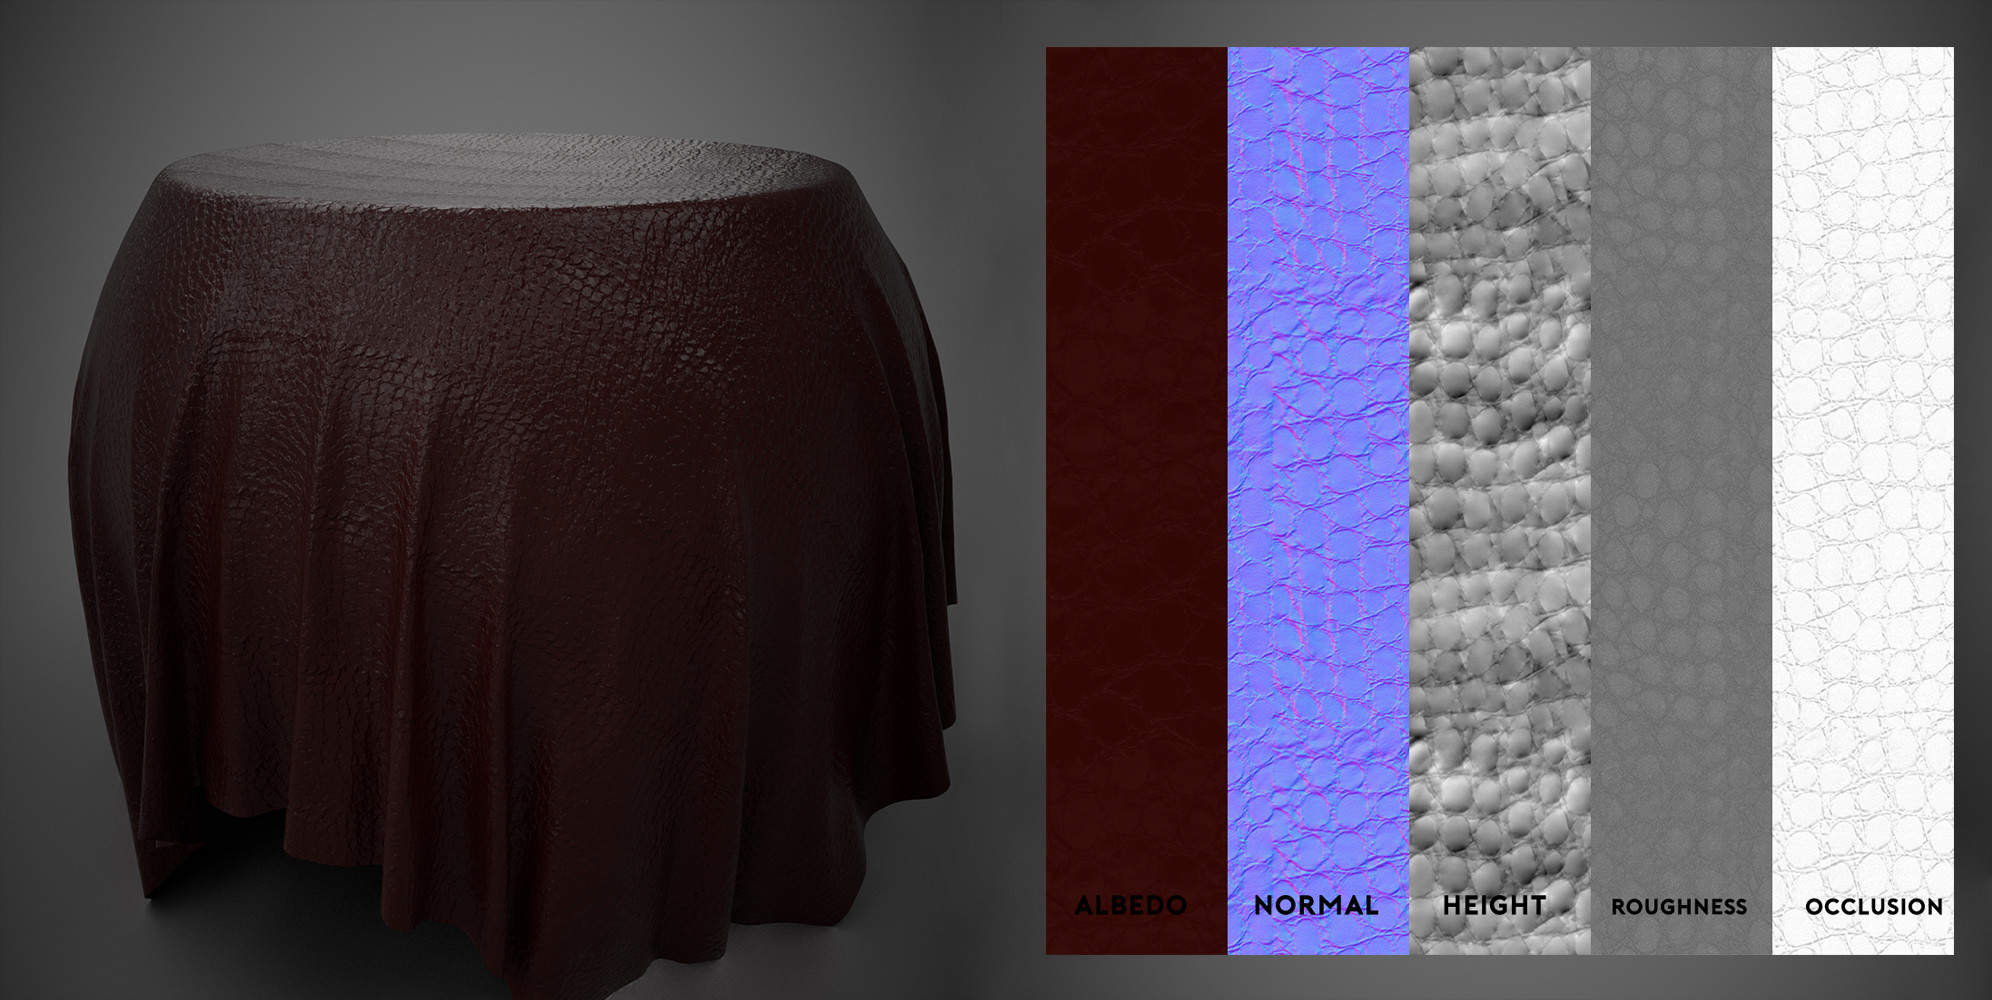 Crocodile Leather - Substance Material Scan